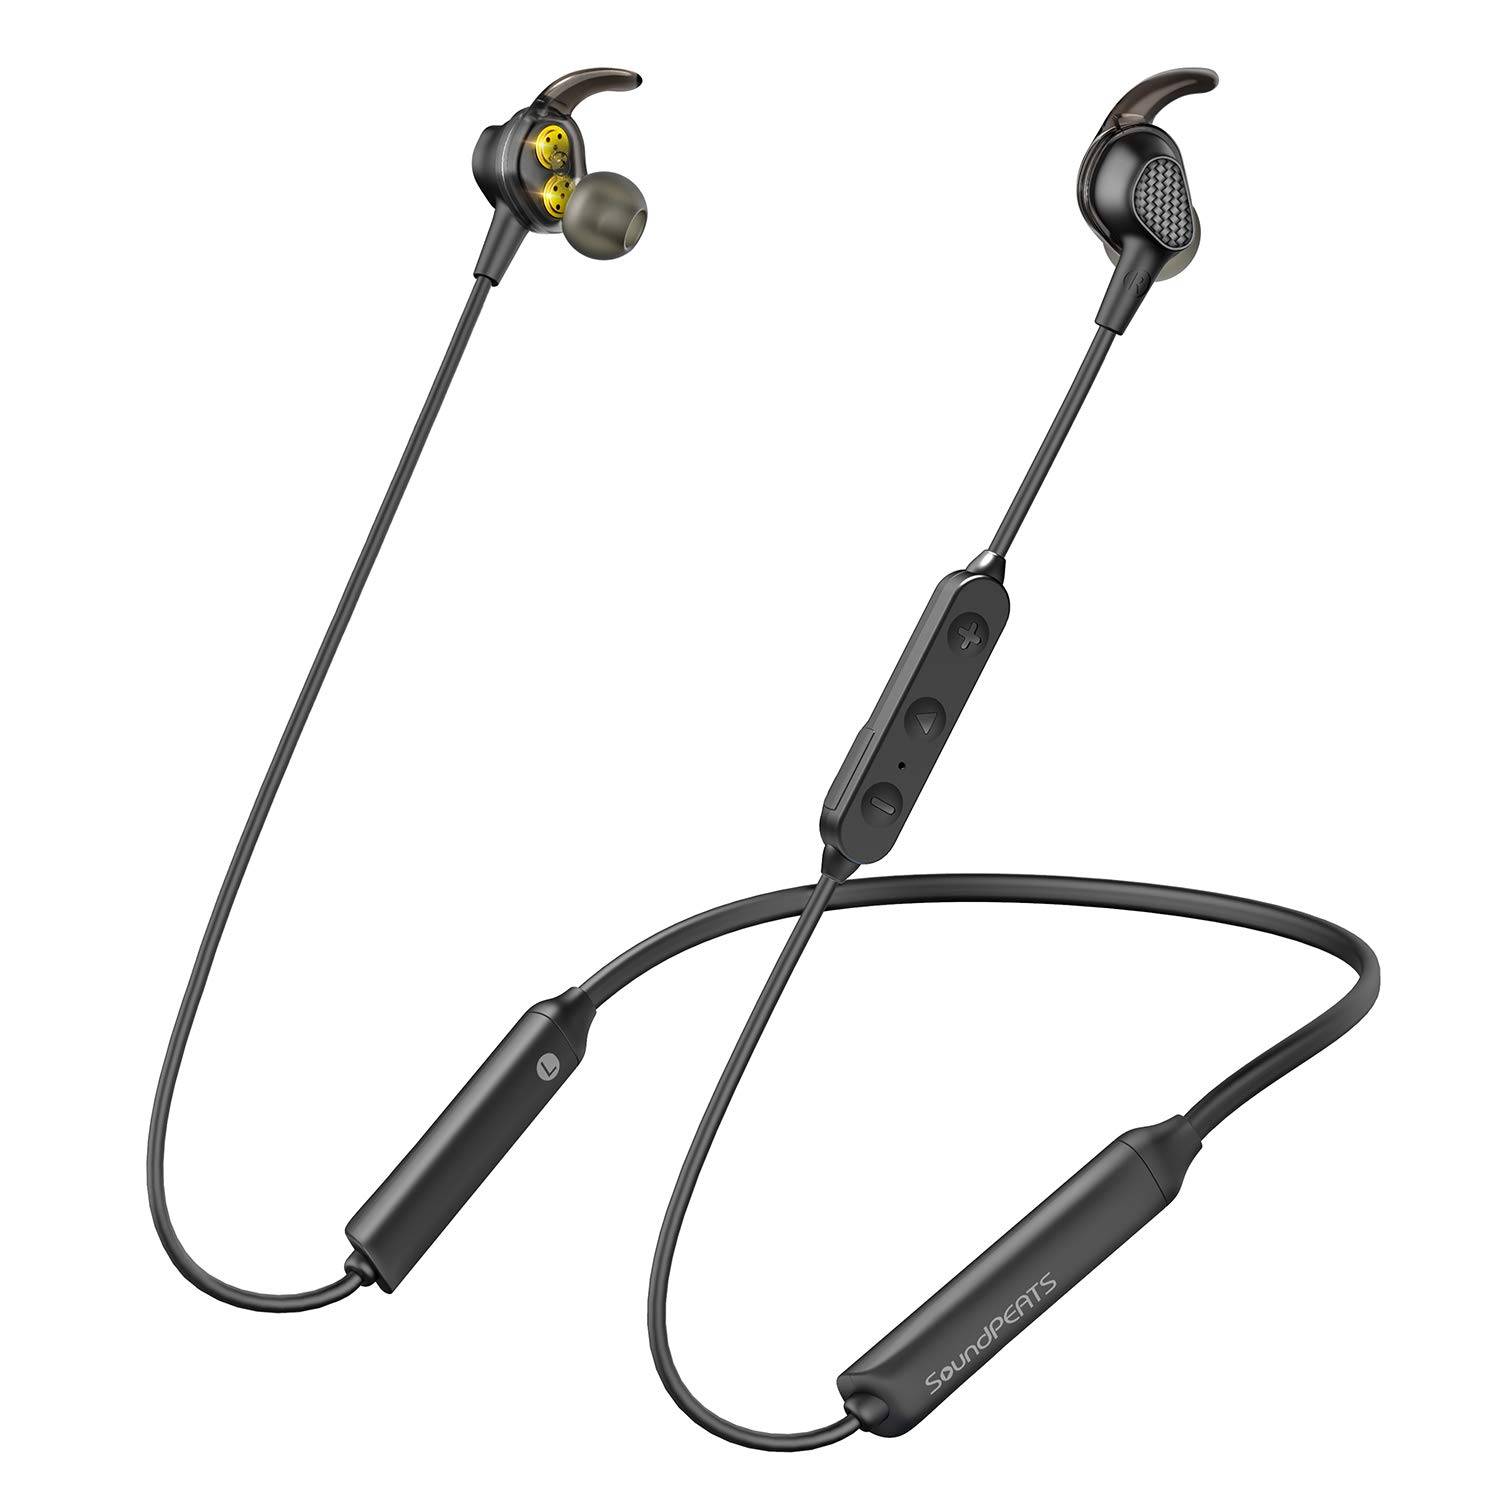 Bluetooth Wireless Headphones, SoundPEATS Real Dual Dynamic Drivers Stereo Earphones 18 hrs Sweatproof Sports Neckband Headsets with Mic,Noise Isolation,BT 5.0,High/Low Crossover Processing Units